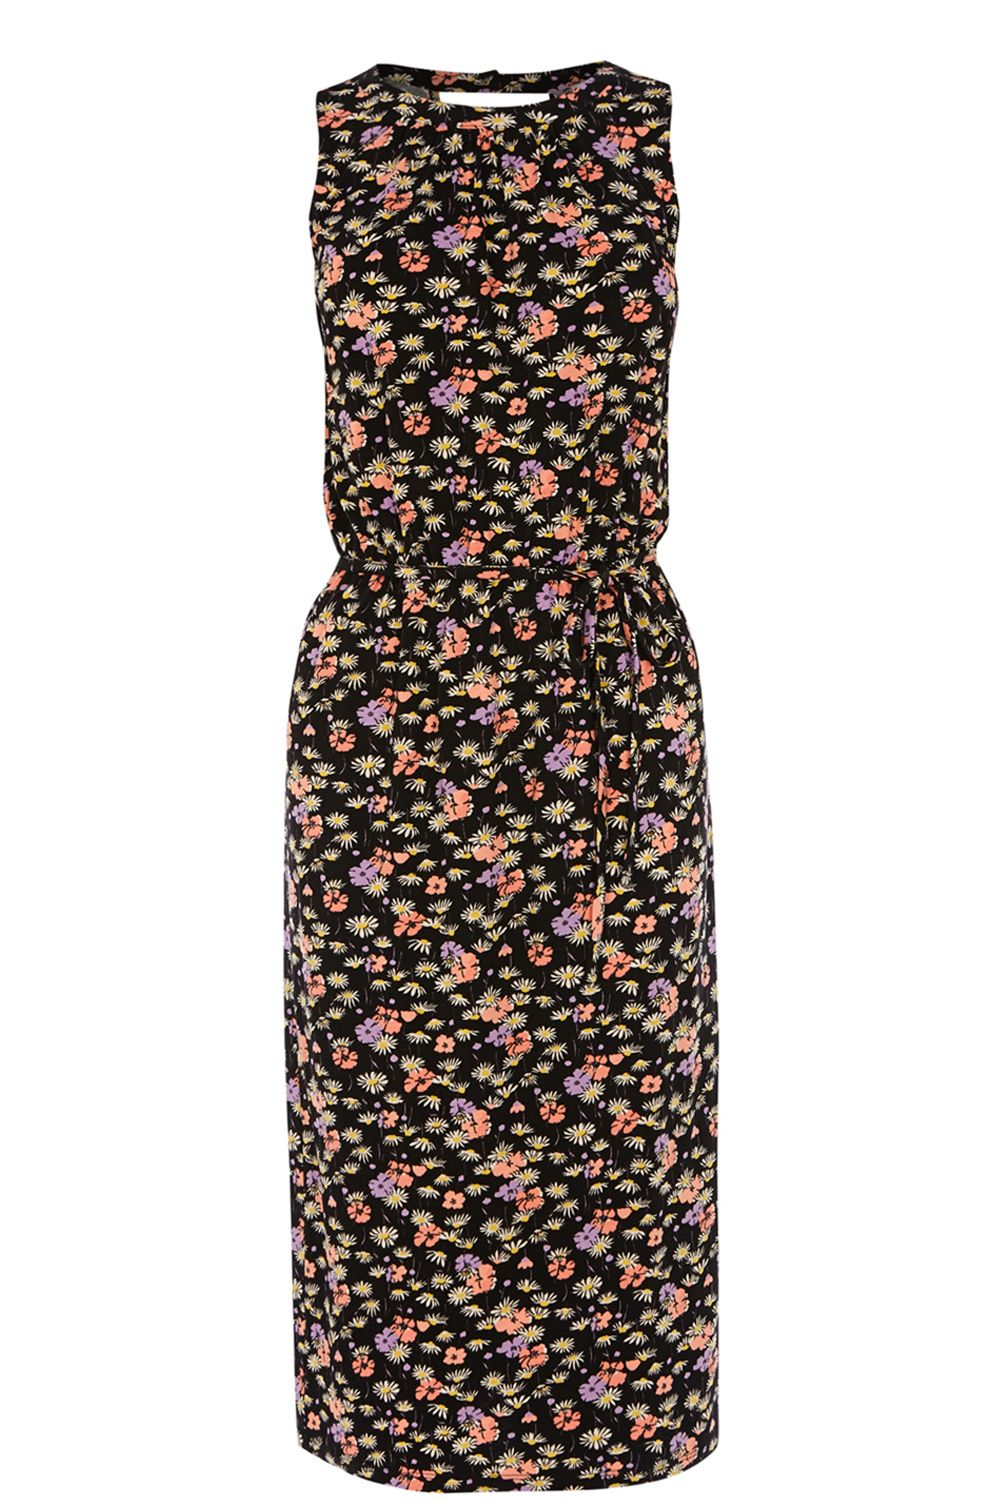 Ditsy Pop Print Midi Dress